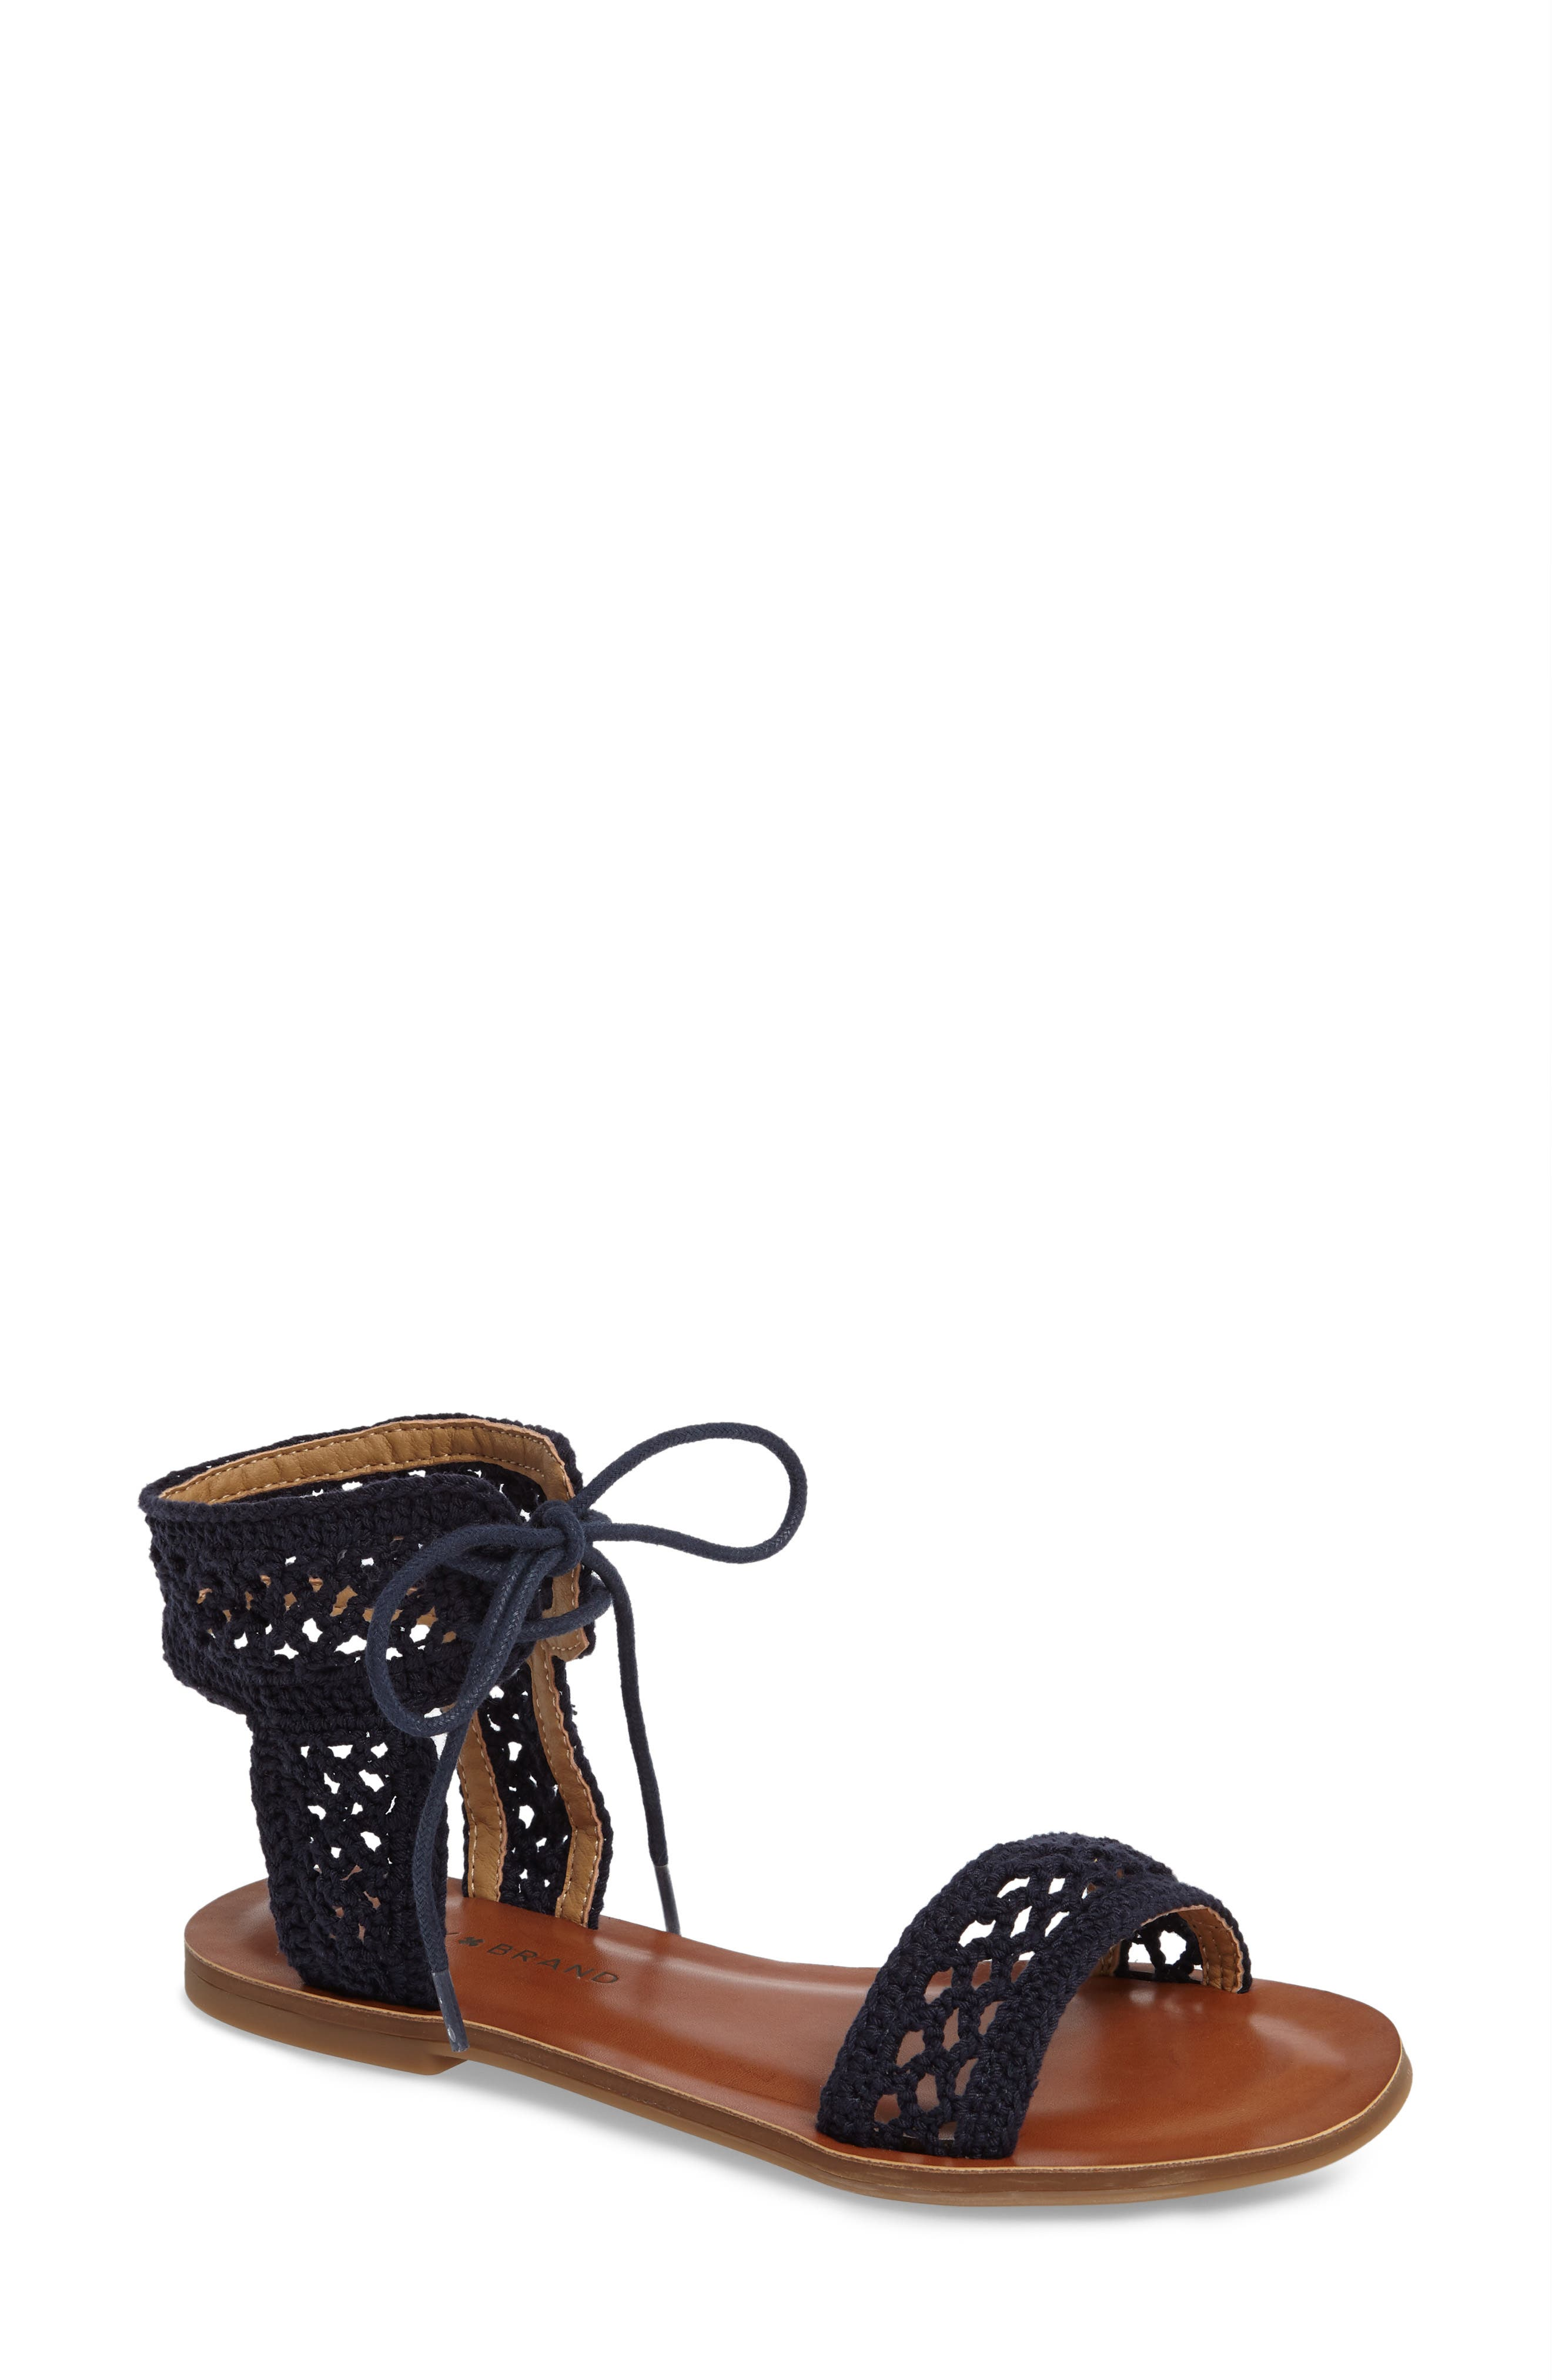 Ariah Ankle Tie Sandal,                             Main thumbnail 1, color,                             Moroccan Blue Fabric